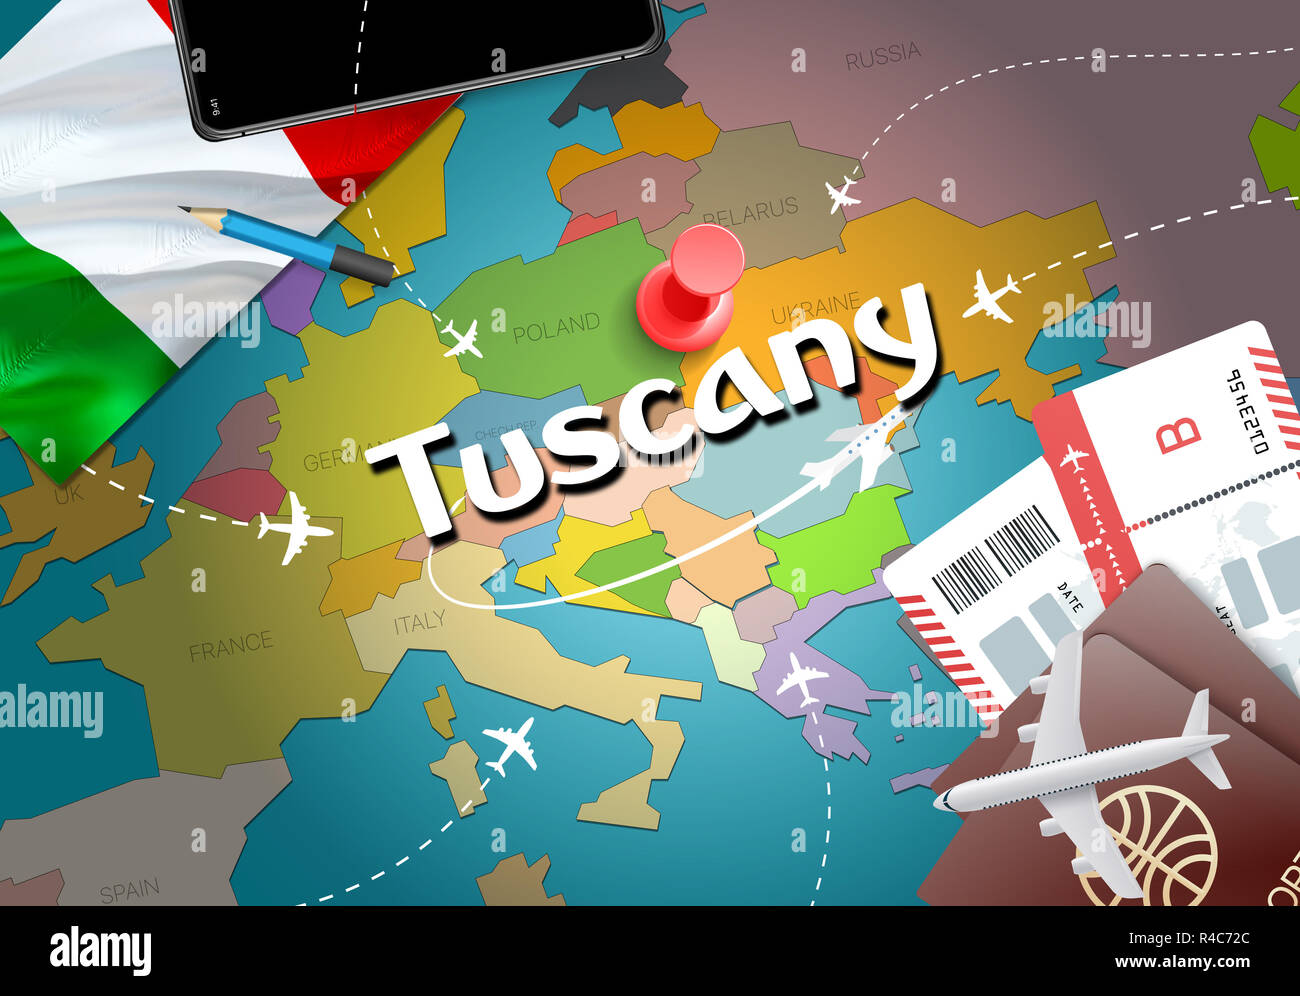 Tuscany city travel and tourism destination concept. Italy flag and ...